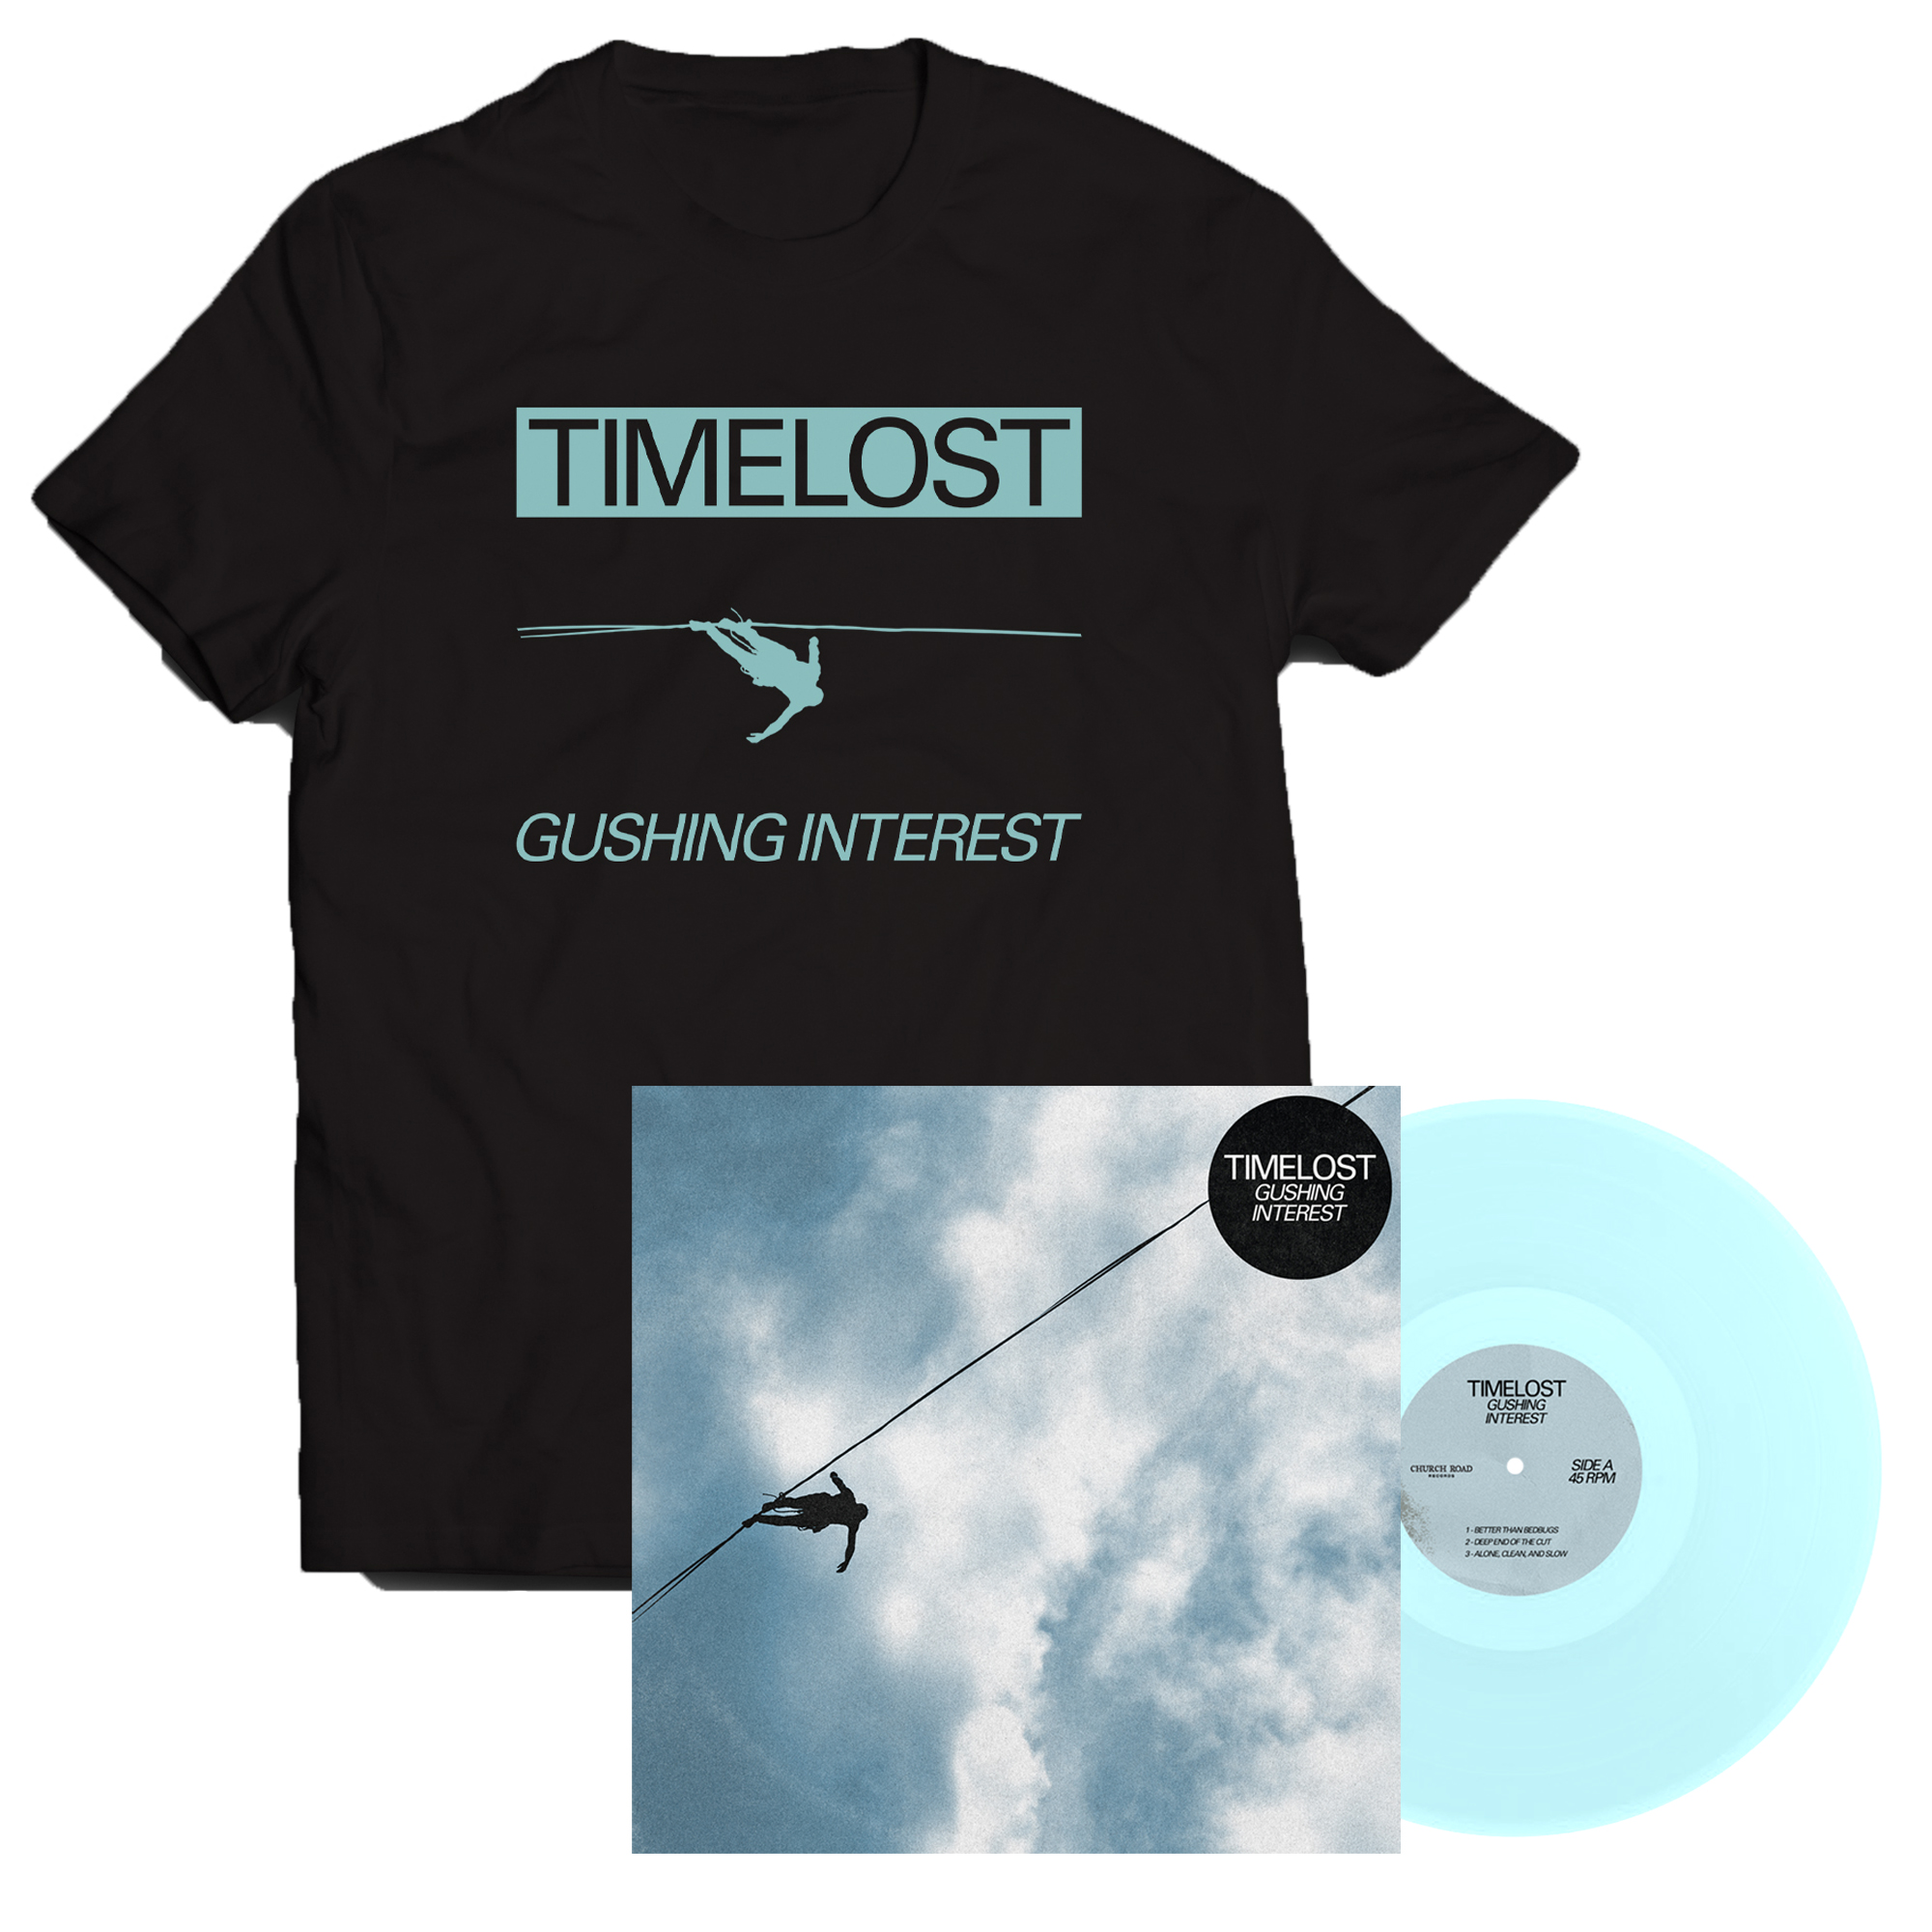 Timelost - Gushing Interest LP + shirt